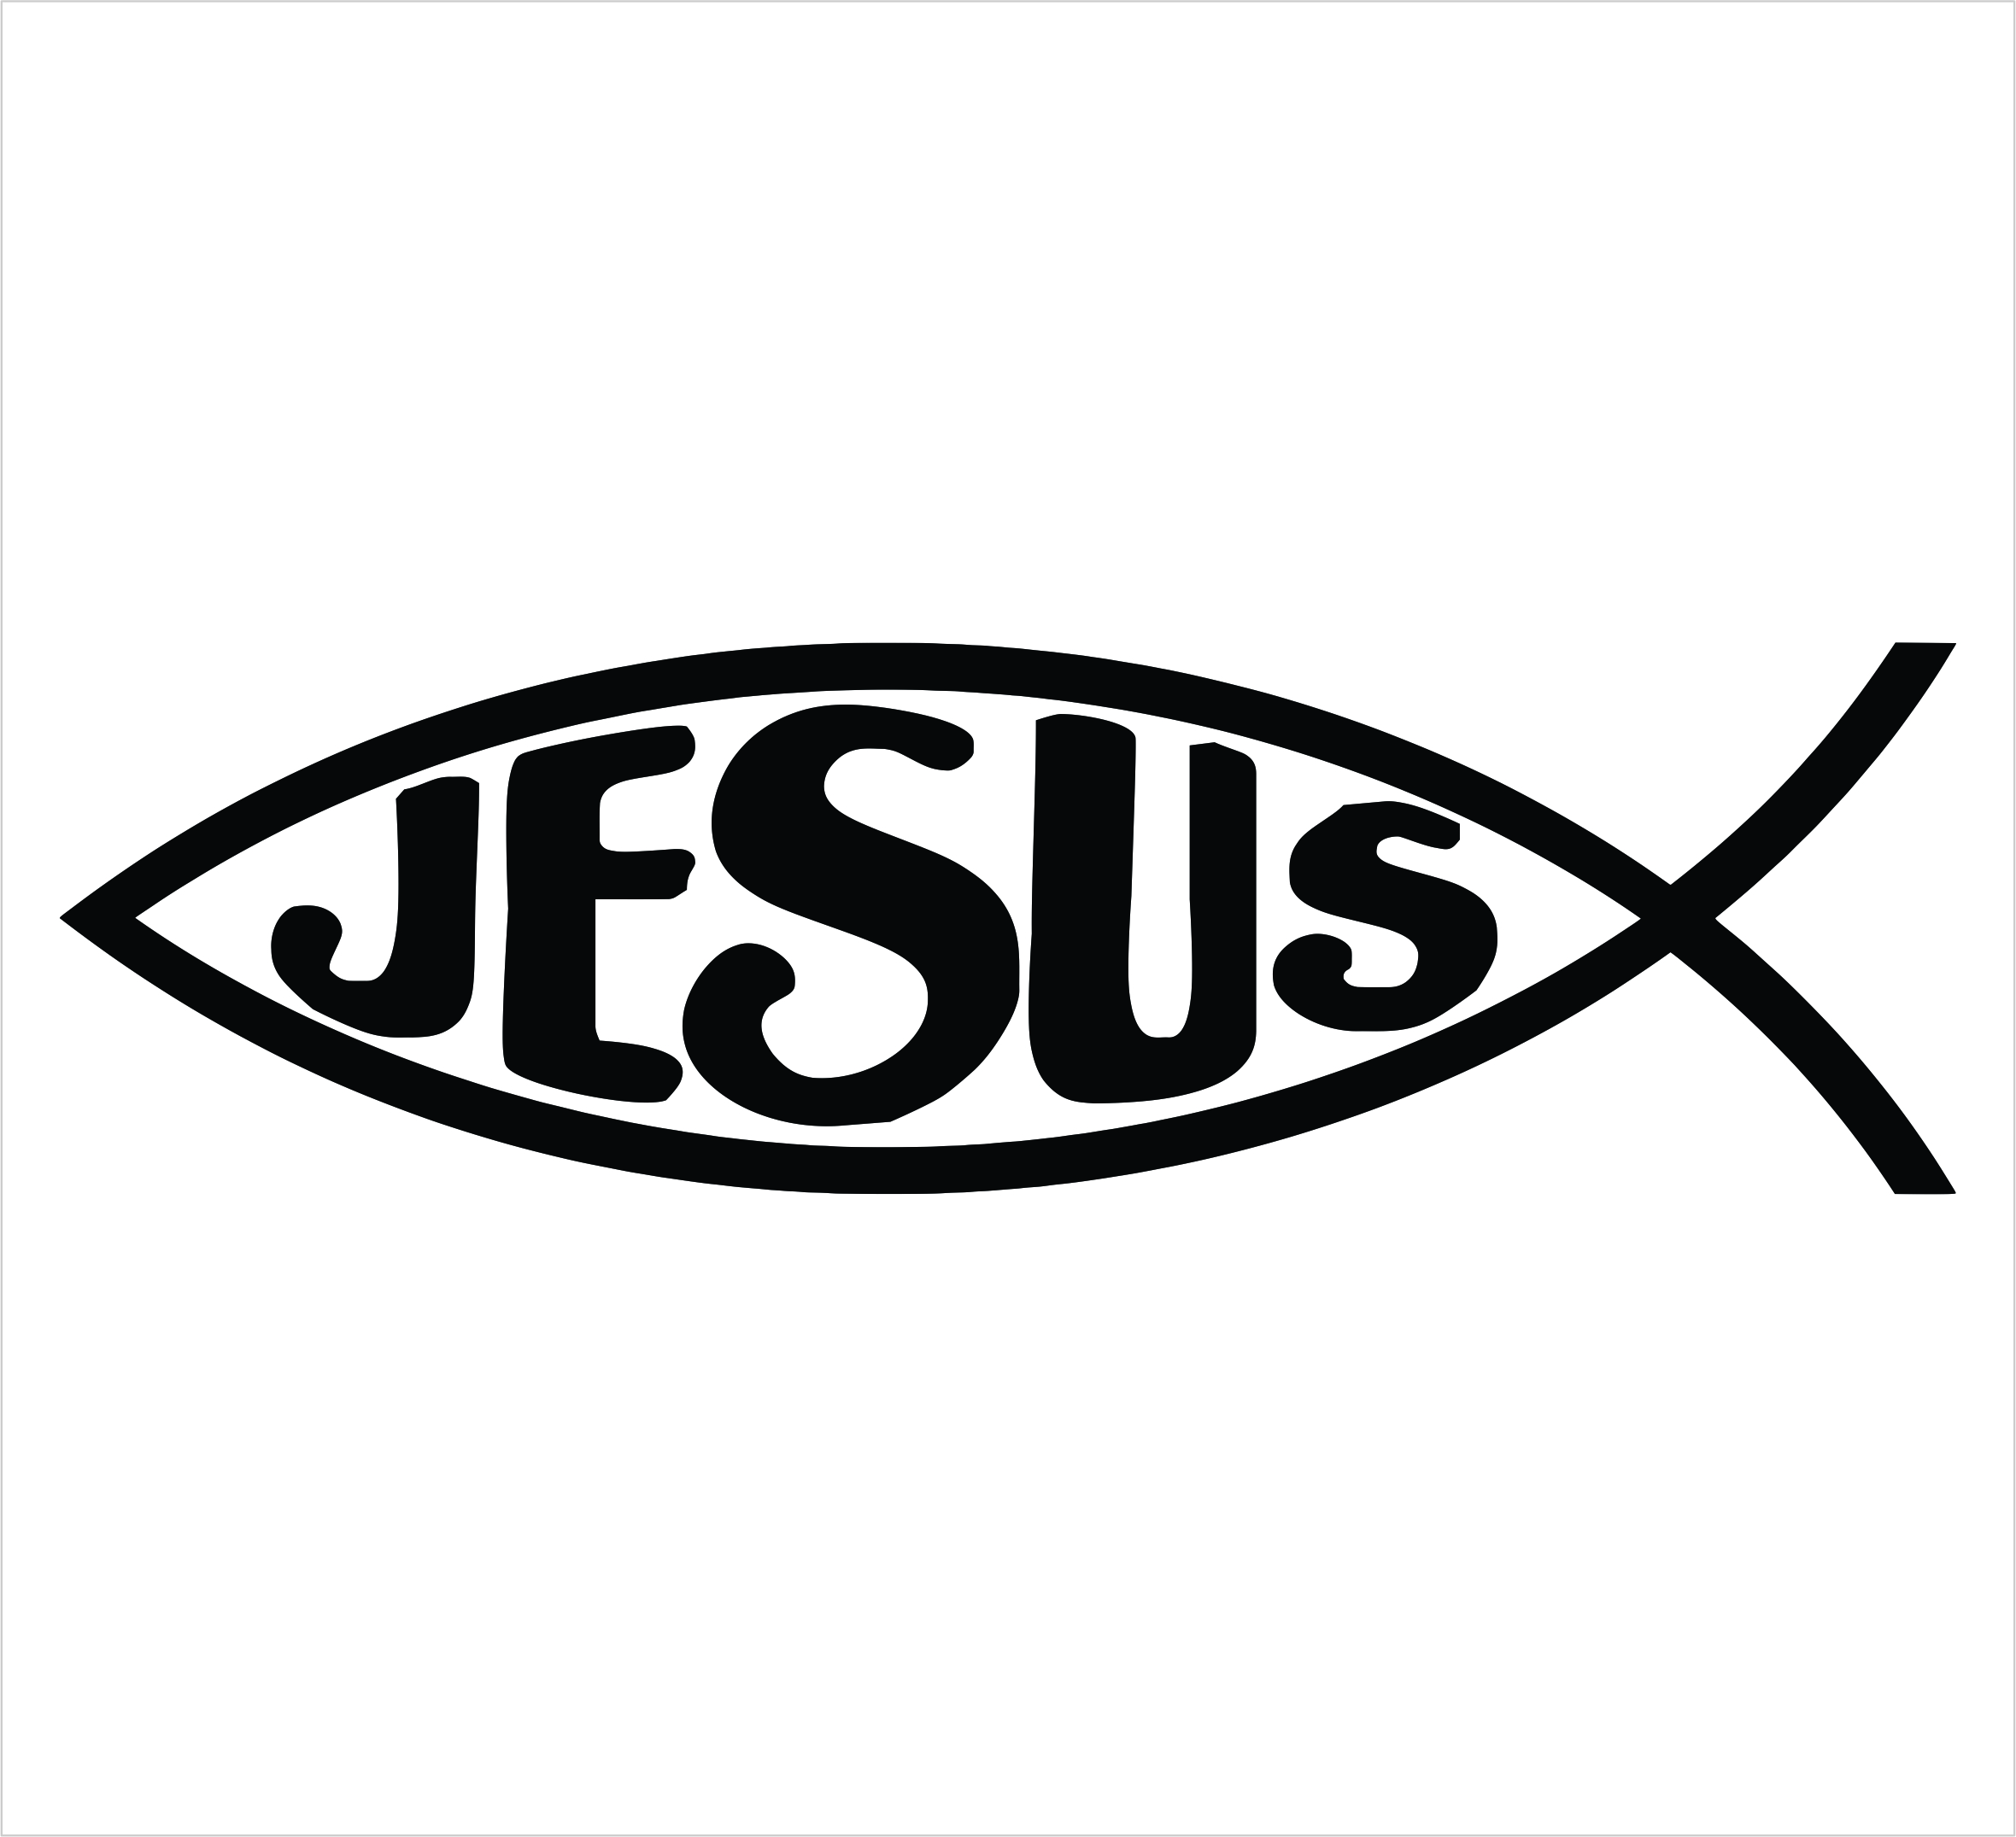 Jesus fish symbol clipart best for Christian fish symbol meaning